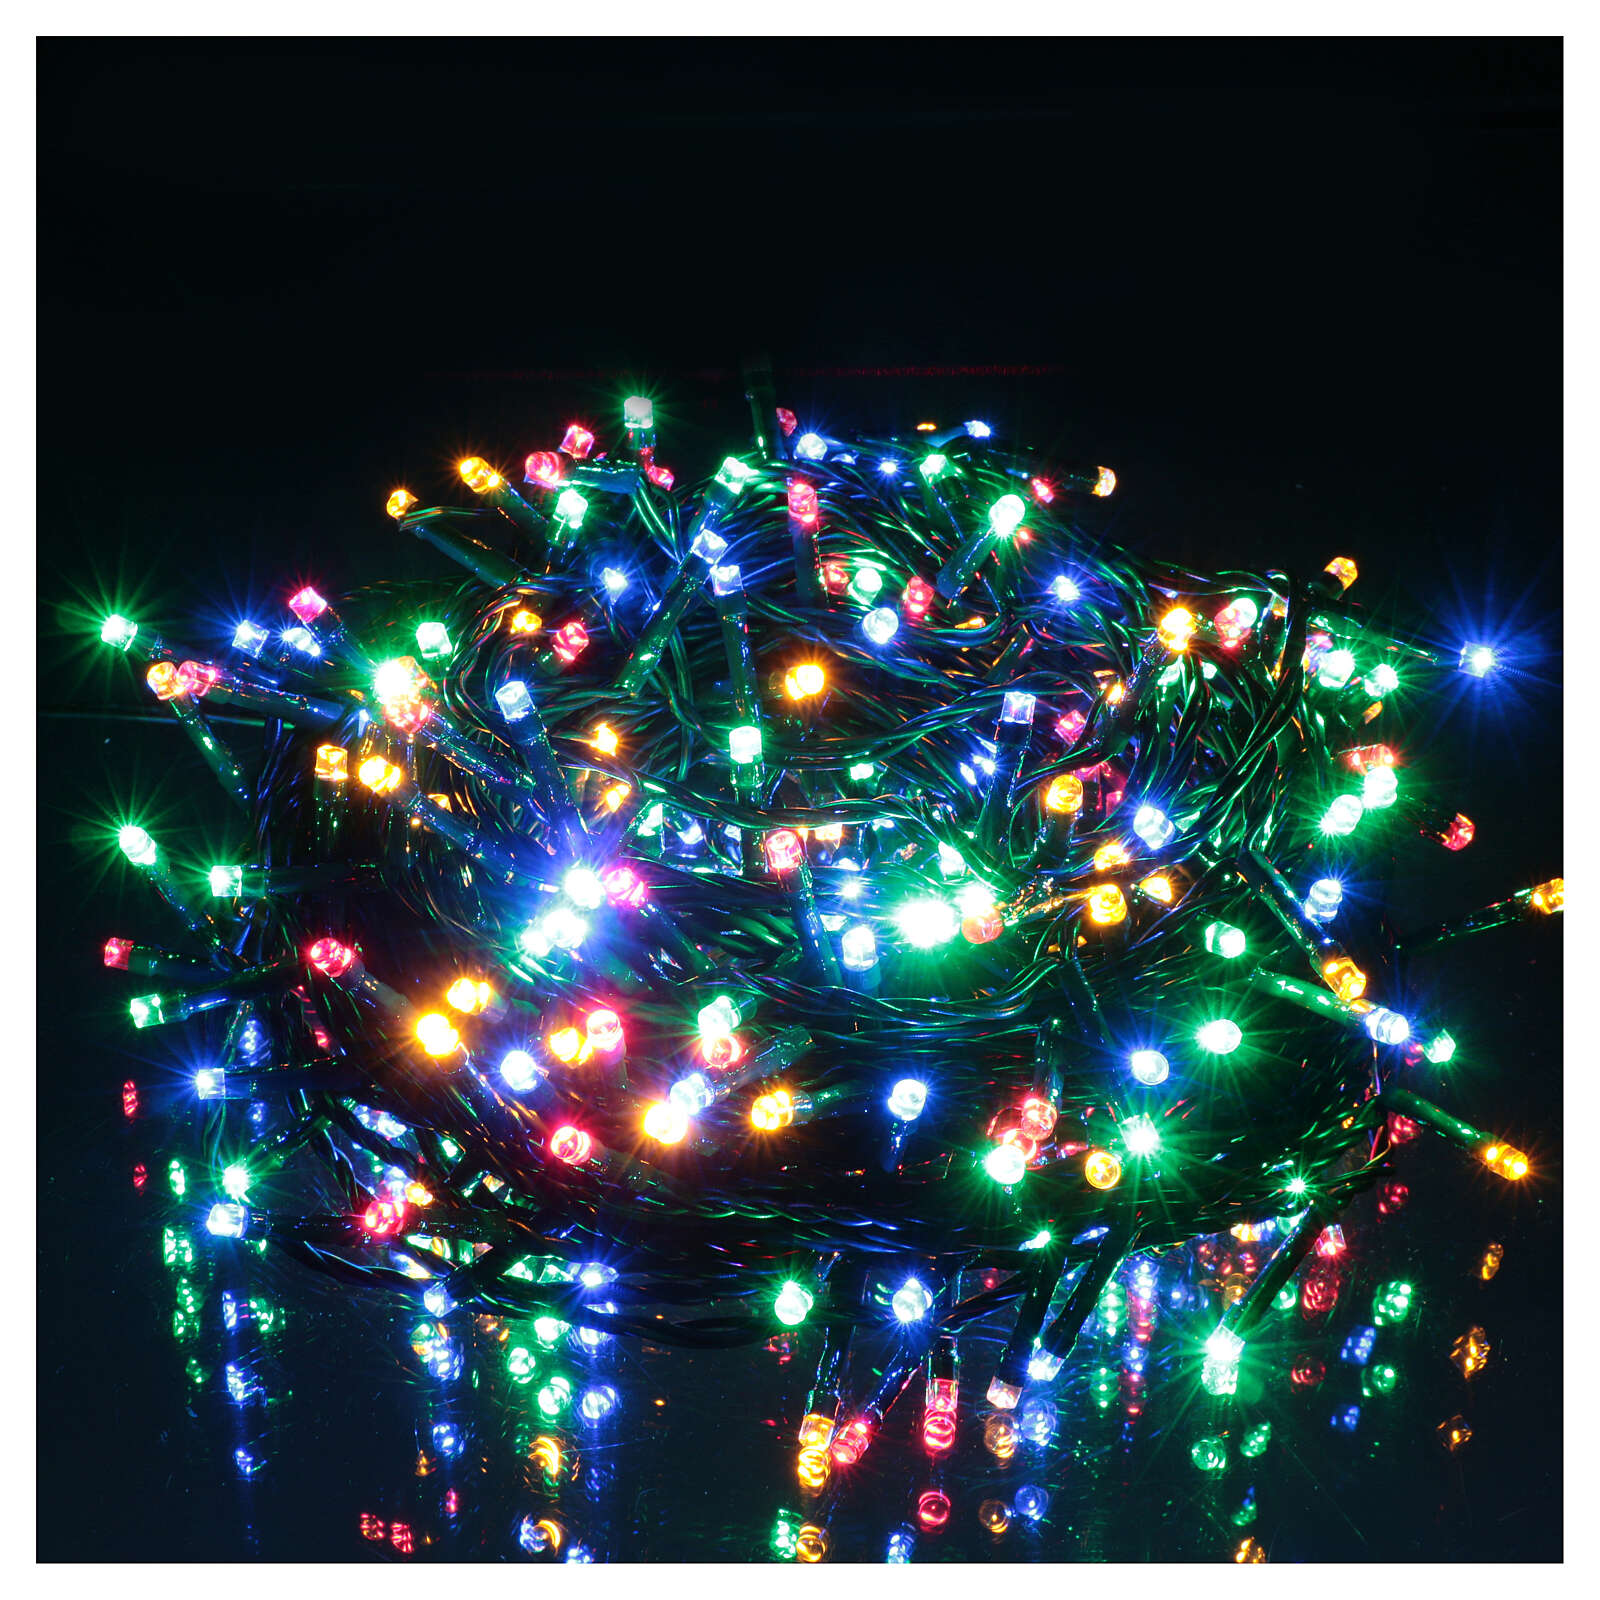 Led Christmas Lights Warm White.Christmas Lights 300 Led Two Toned Warm White And Multicolor